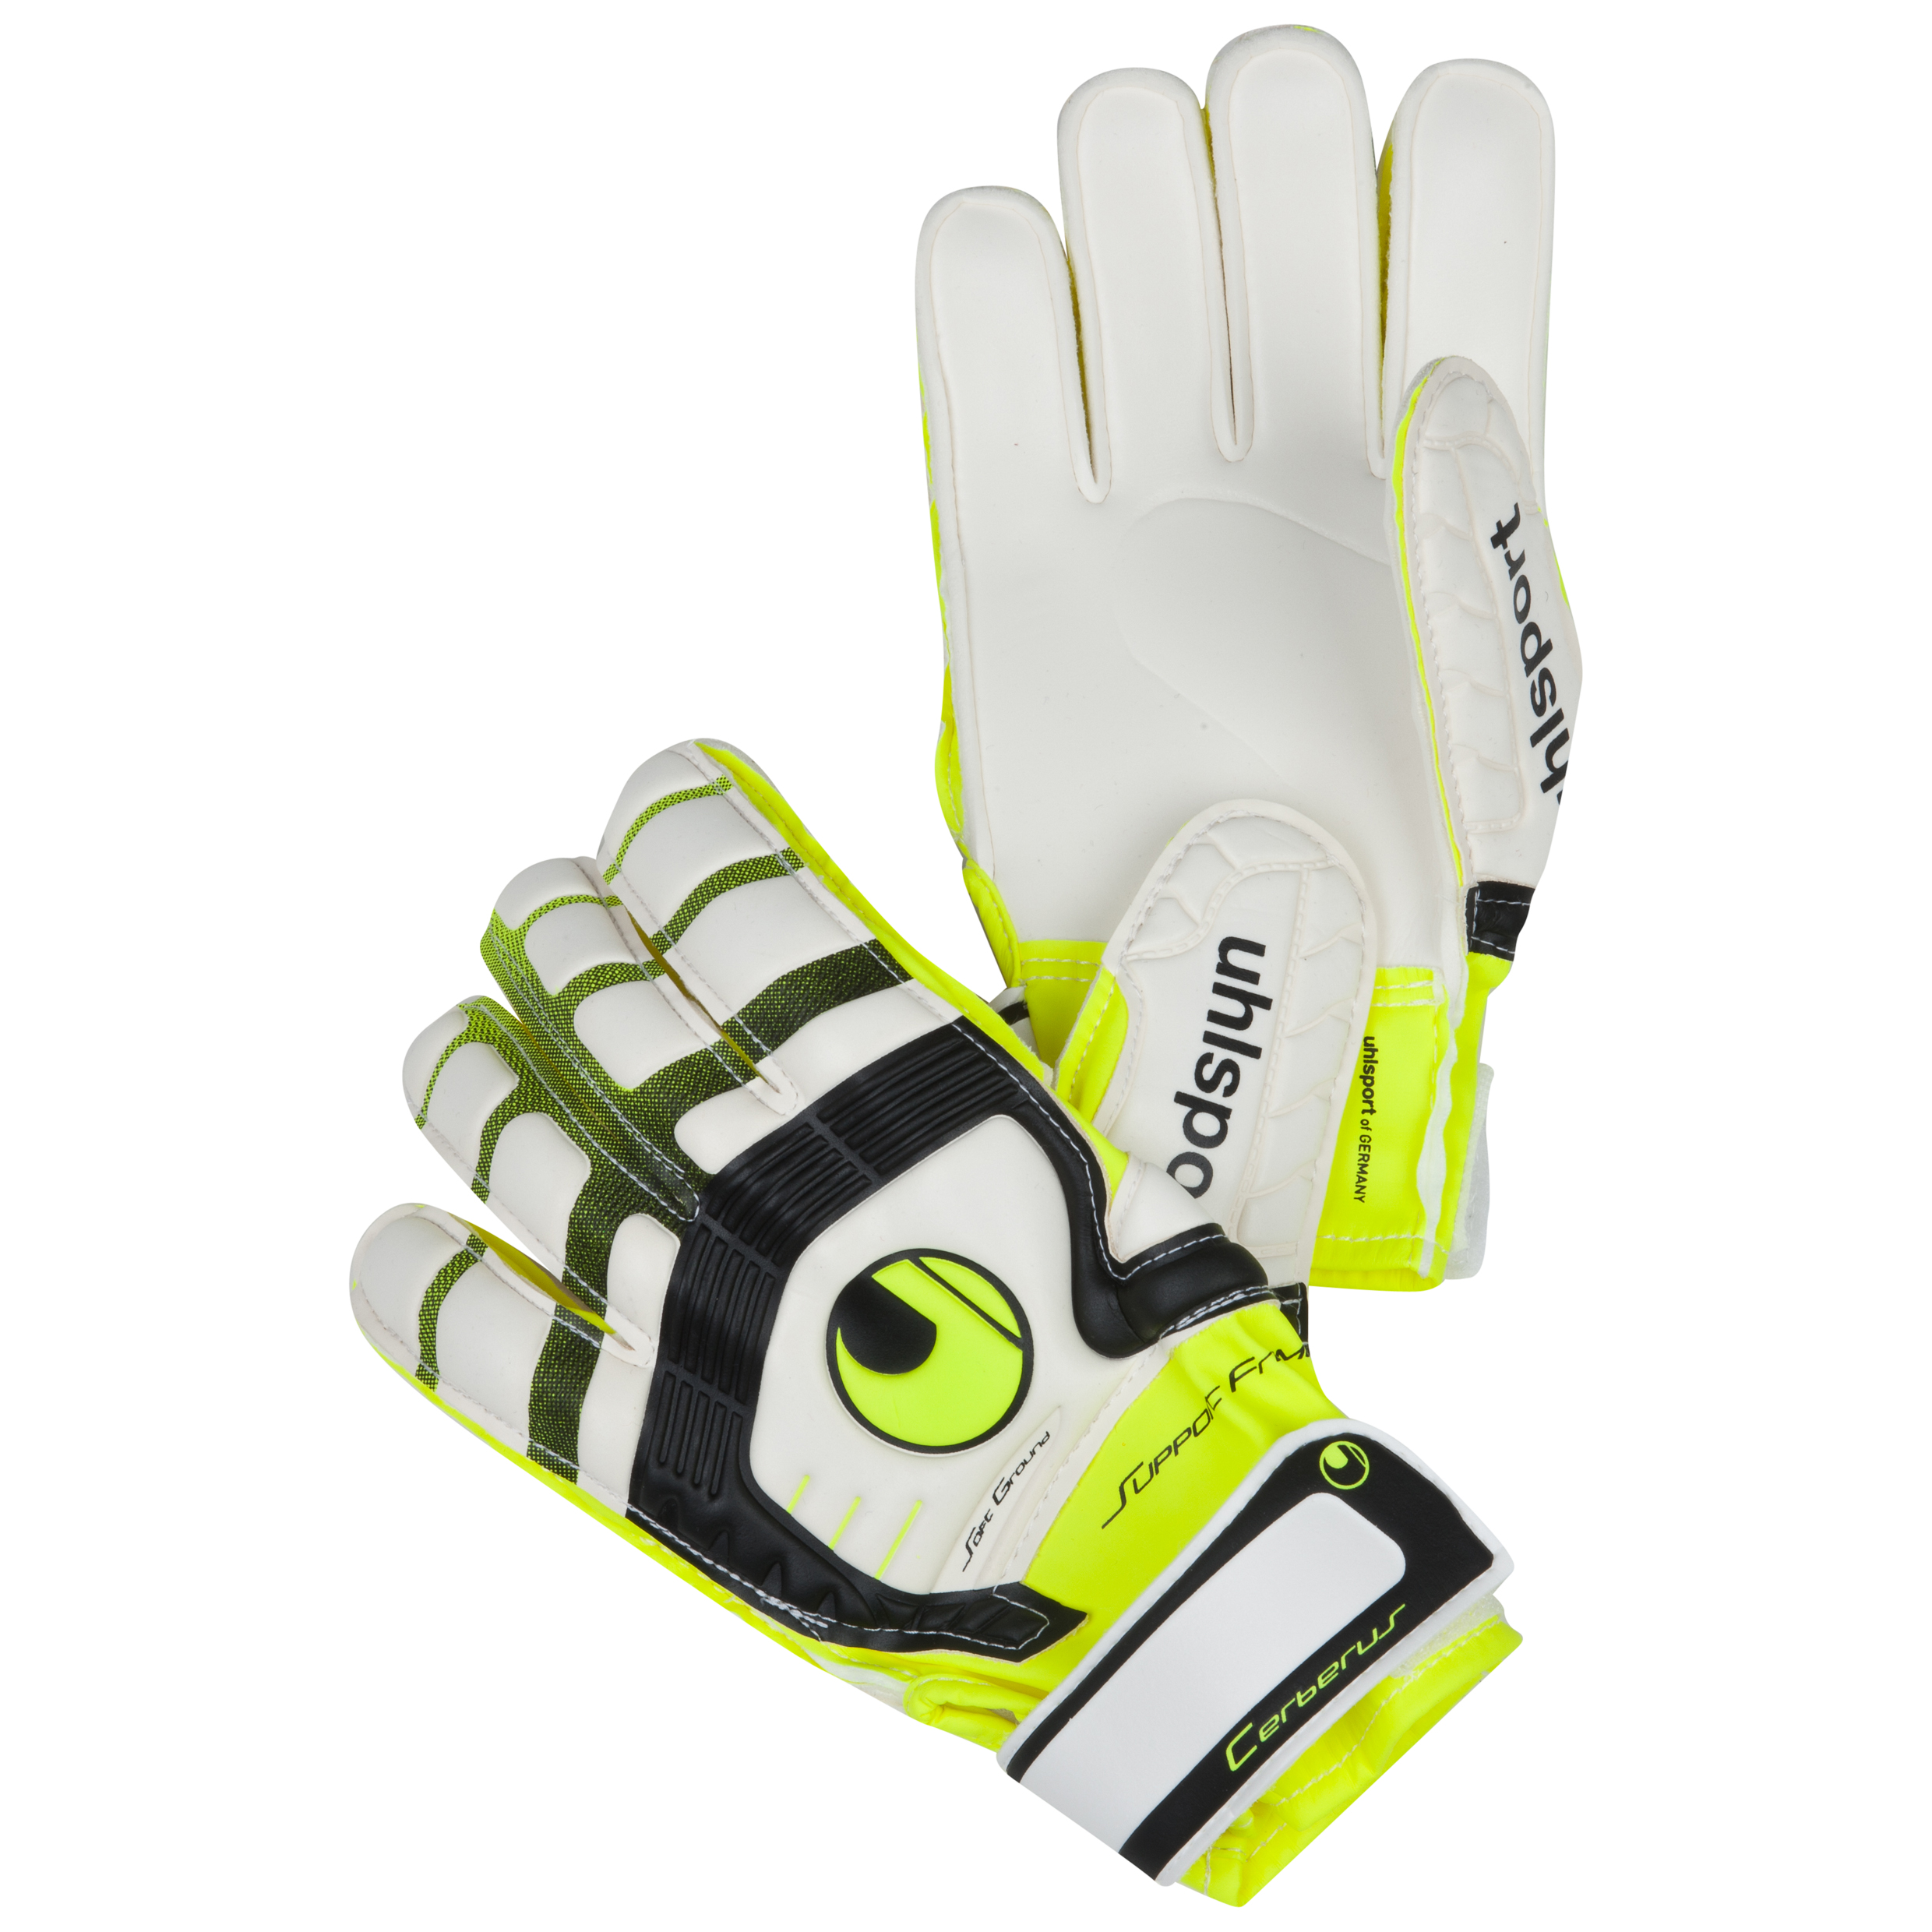 Uhlsport Cerberus Supportframe Goalkeeper Gloves Kids - White/Flou Yellow/Black